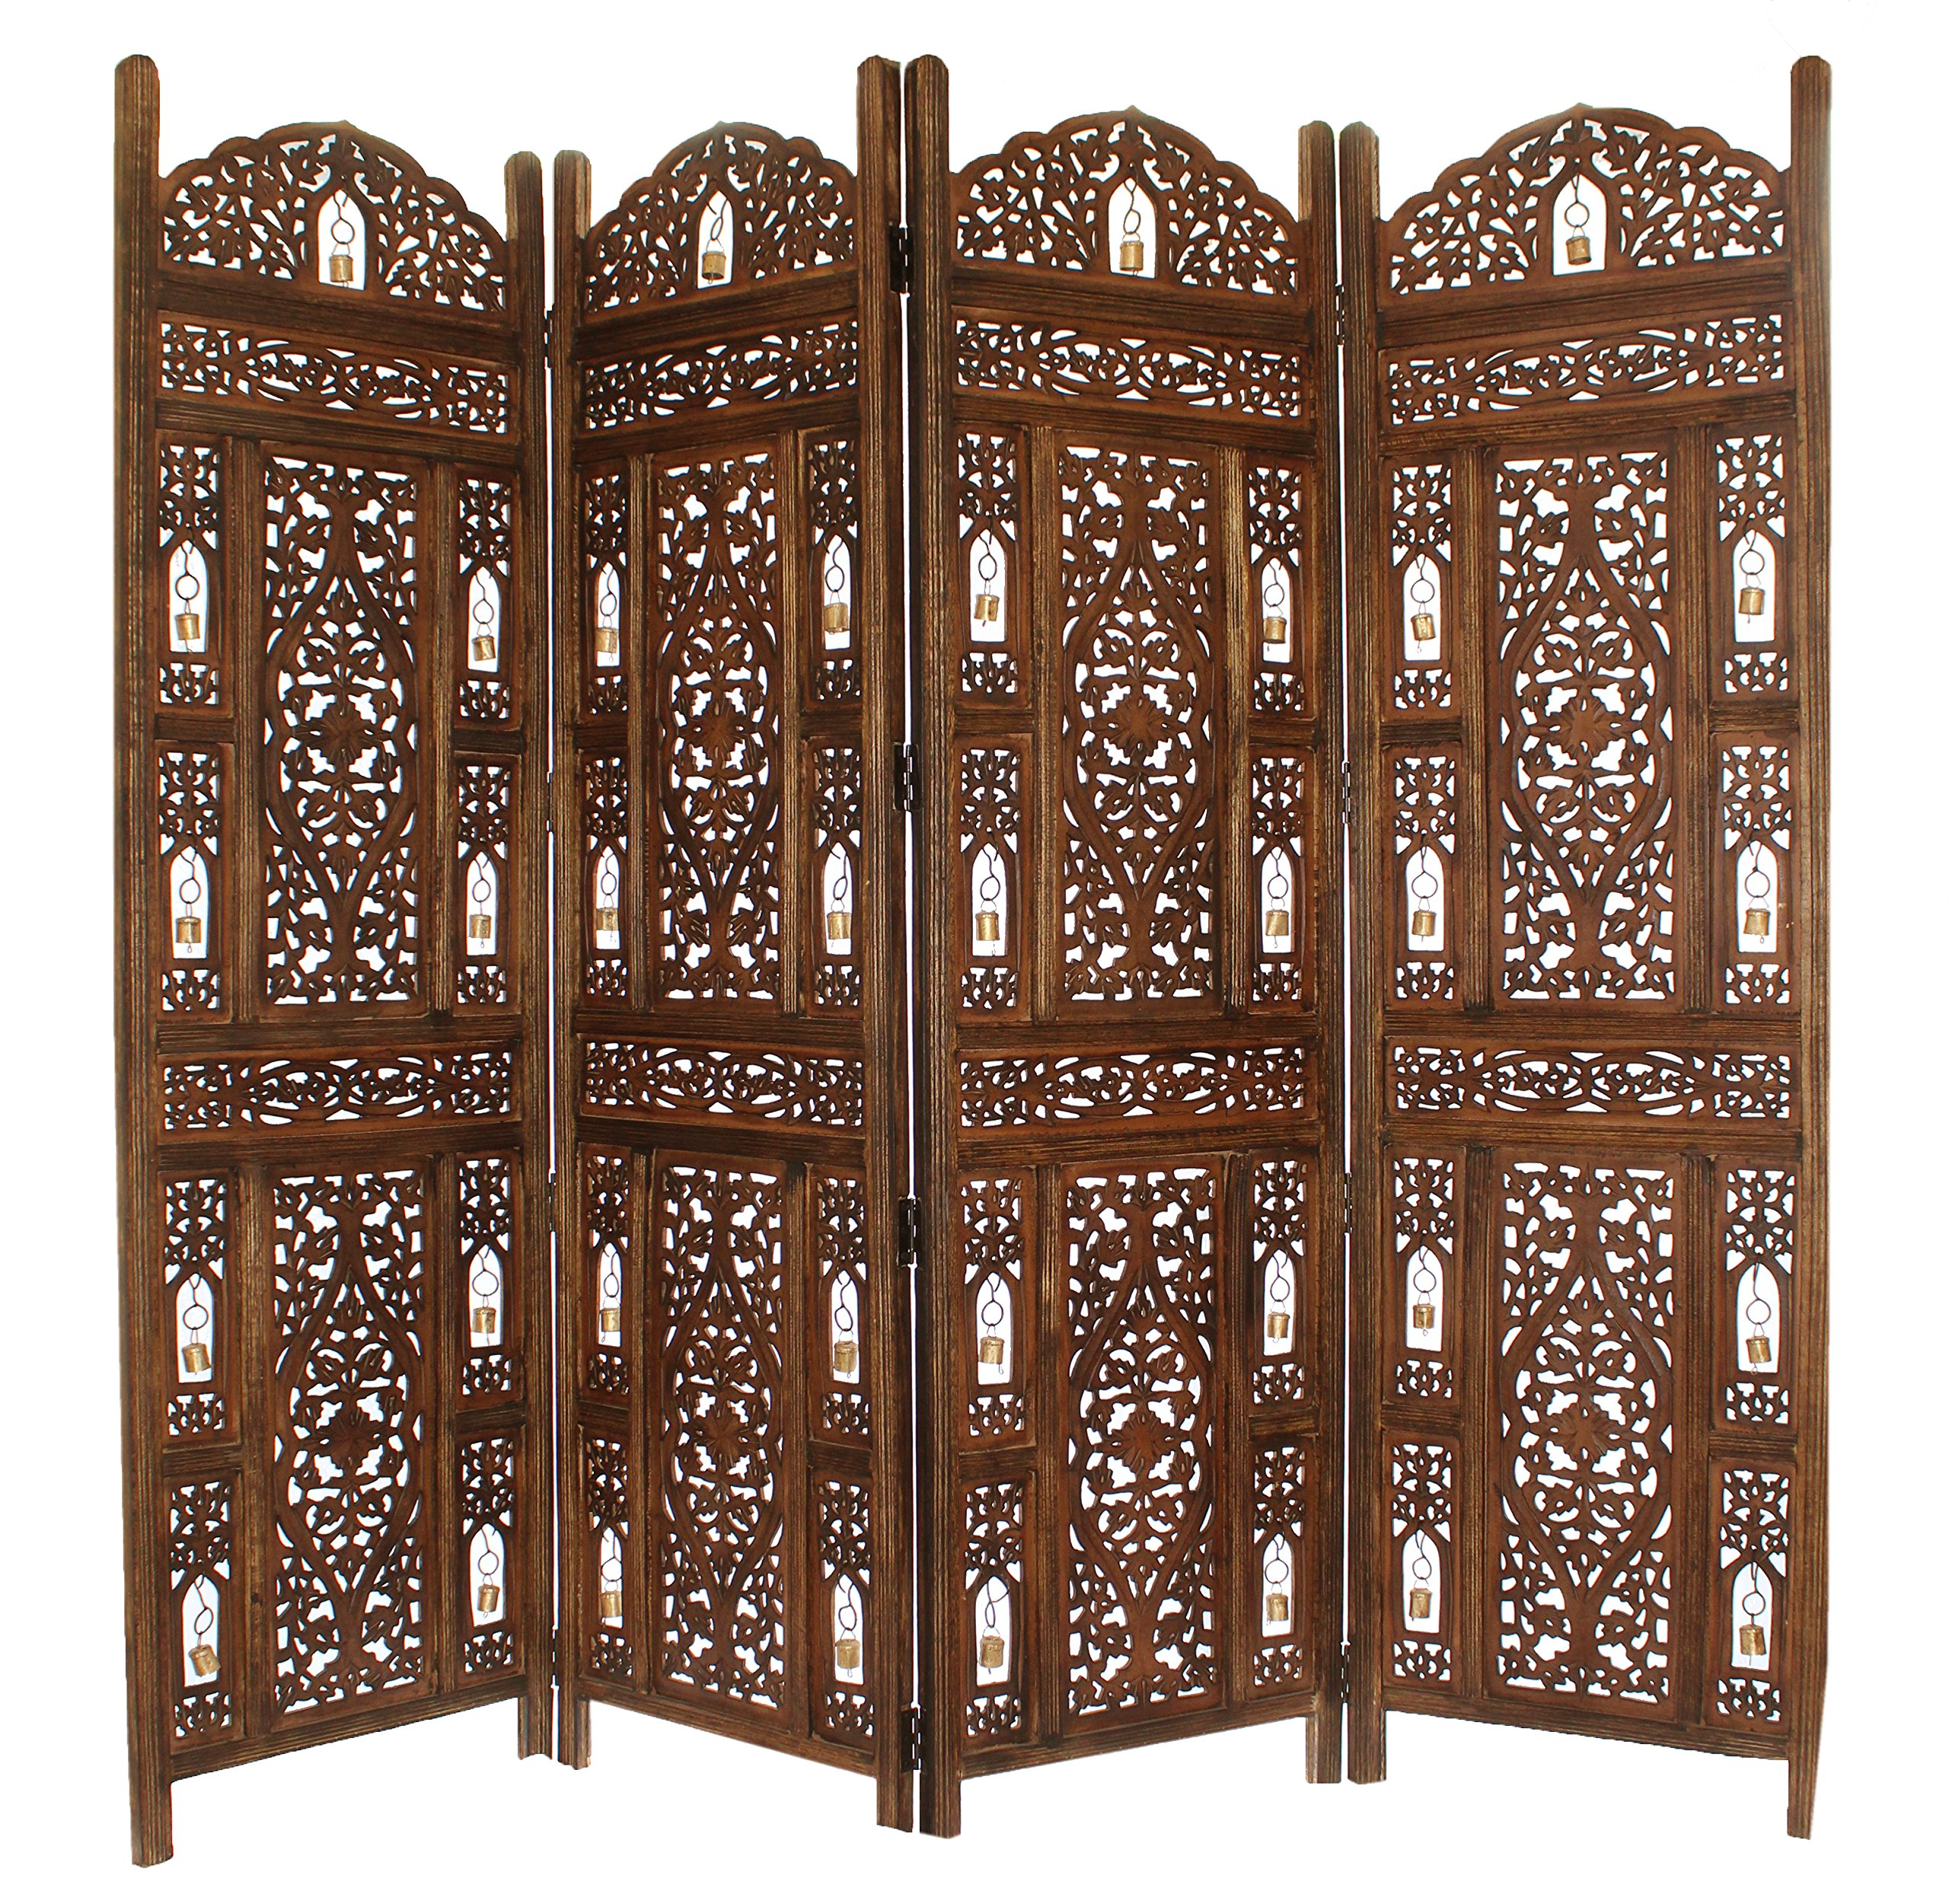 Cotton Craft Ghanti Bells - Antique Brown 4 Panel Handcrafted Wood Room Divider Screen 72x80 - With Tiny Bells - Intricately Carved On Both Sides by COTTON CRAFT